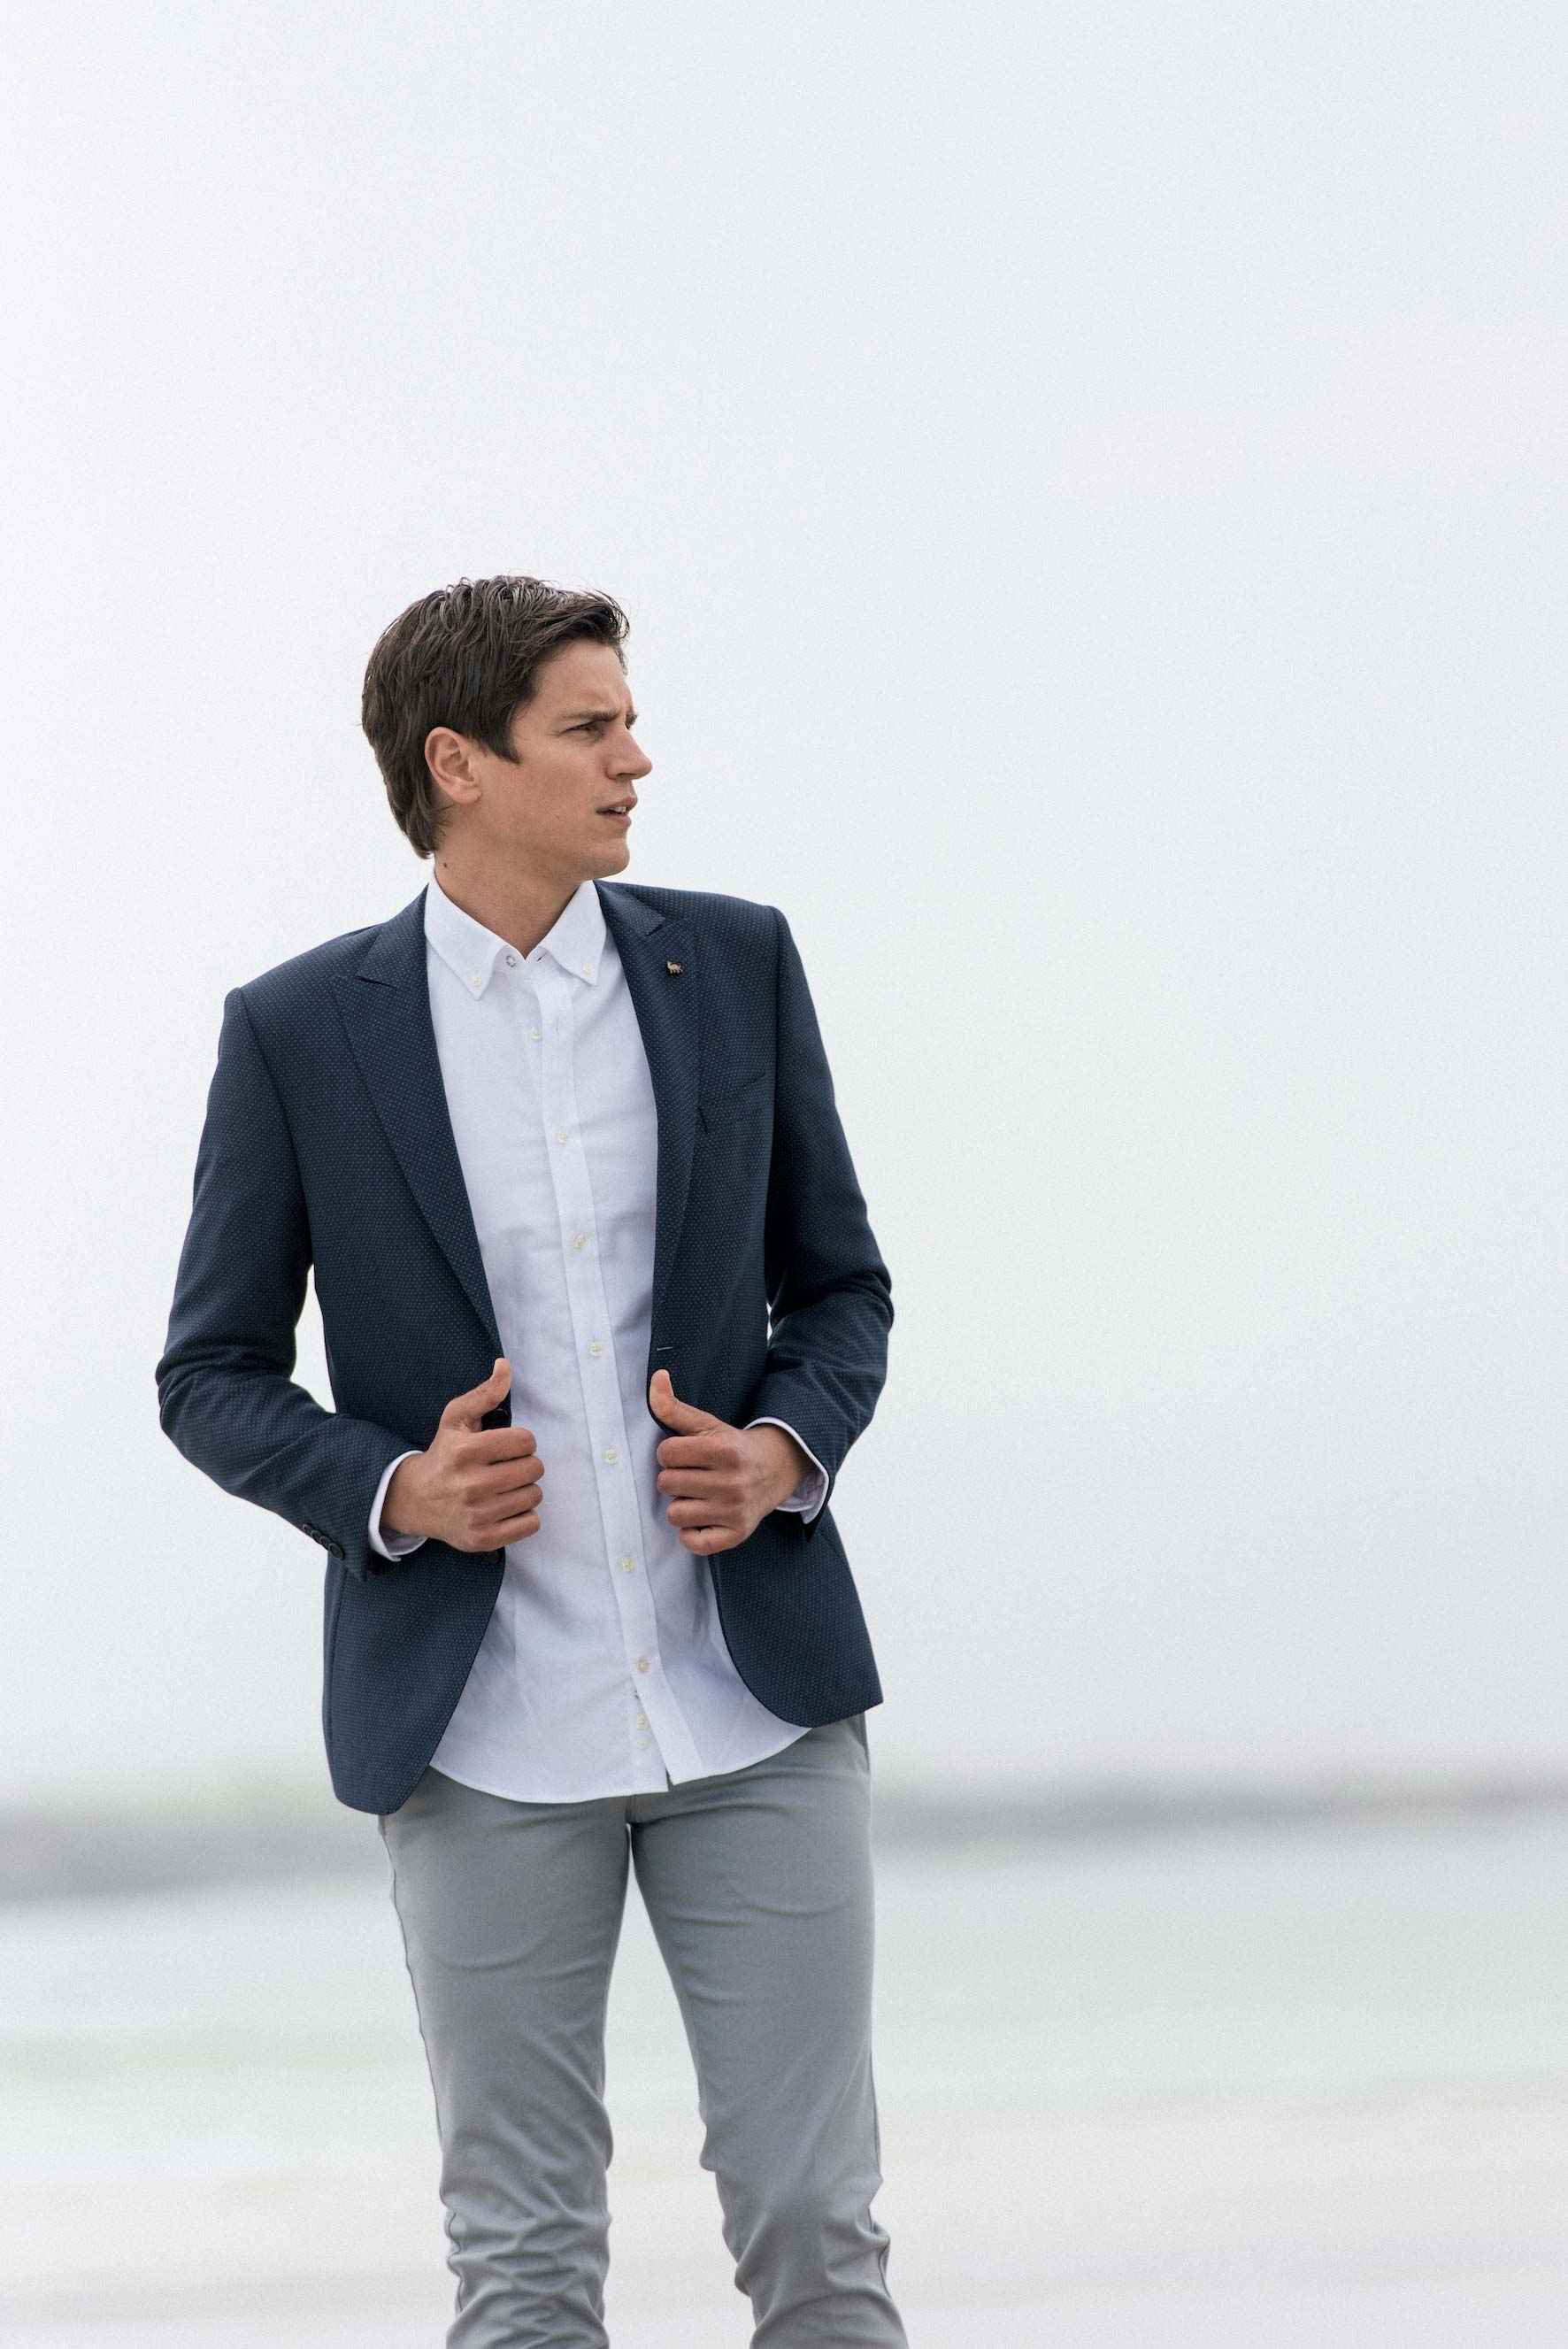 blazers & Jackets - A good blazer is one of the most flexible items a man can have. Easily dress one up or down to suit the occasion by complementing it with a variety of clothes, be it a dress shirt and tie, polo shirt or even a T-shirt.